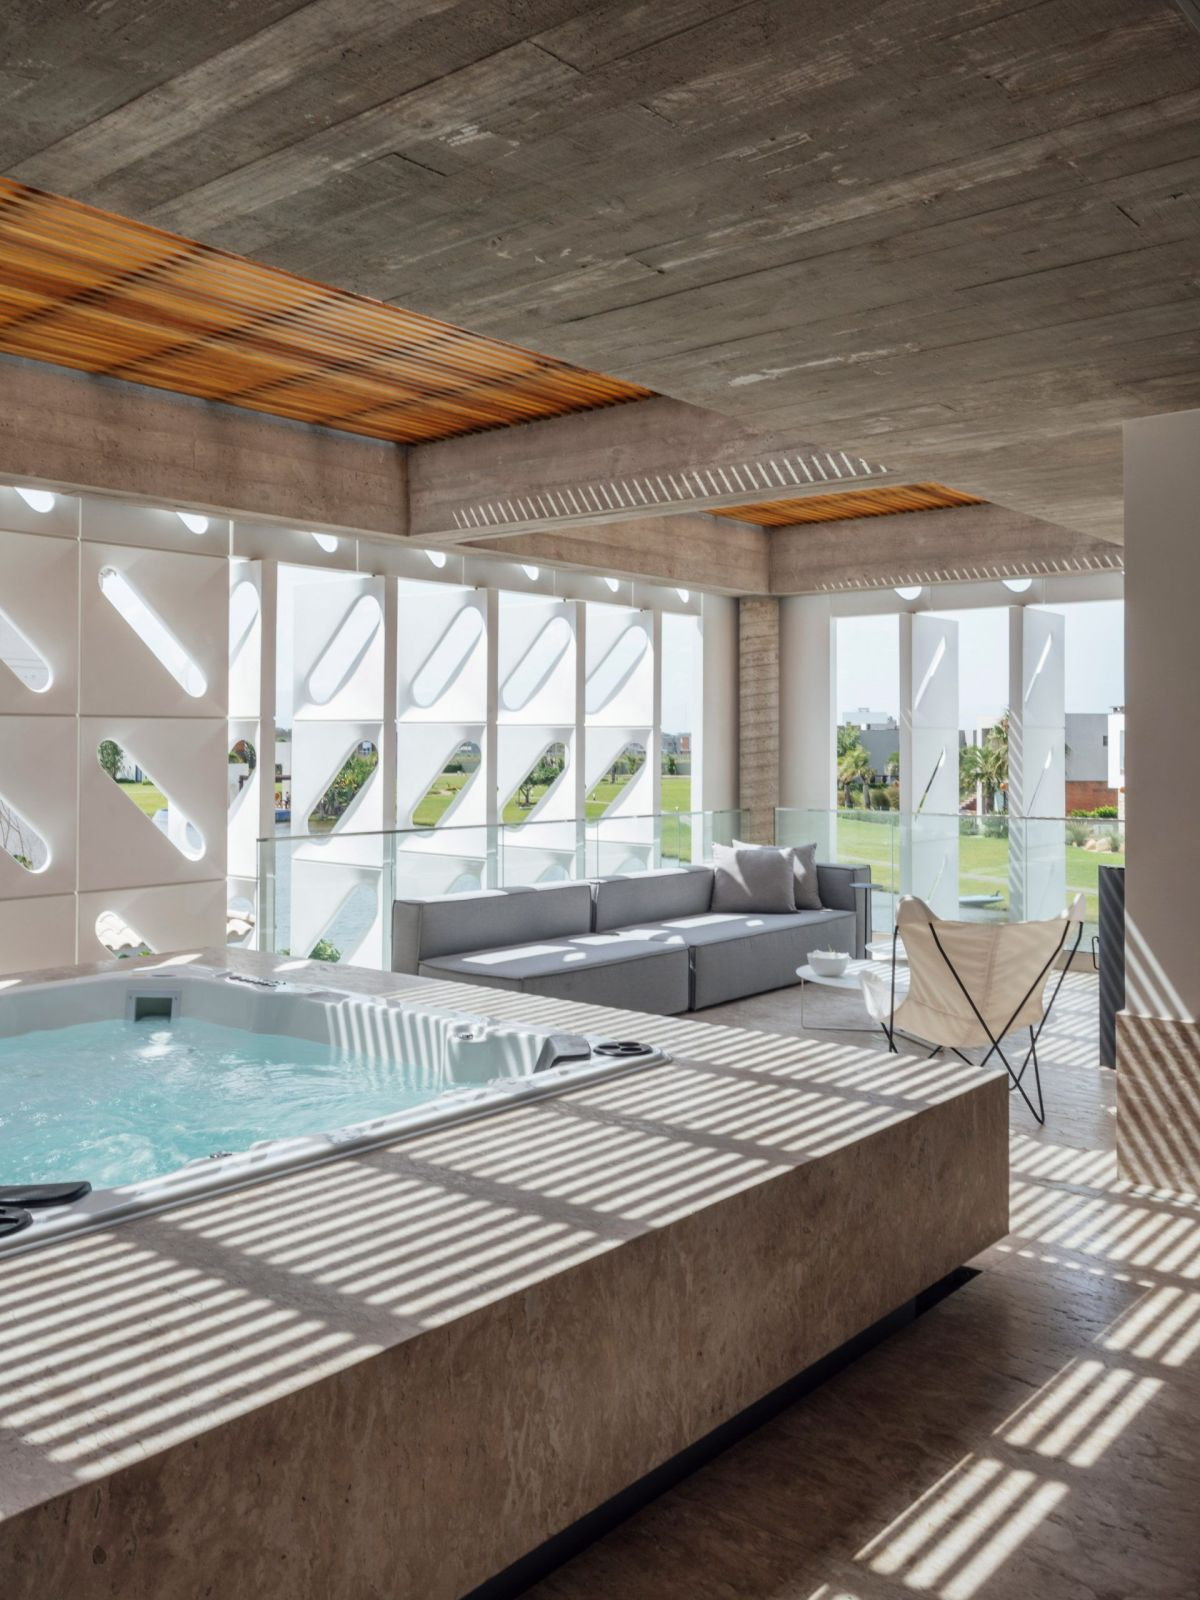 On the upper floor there's a covered terrace with a hot tub concealed behind the pivoting shutters